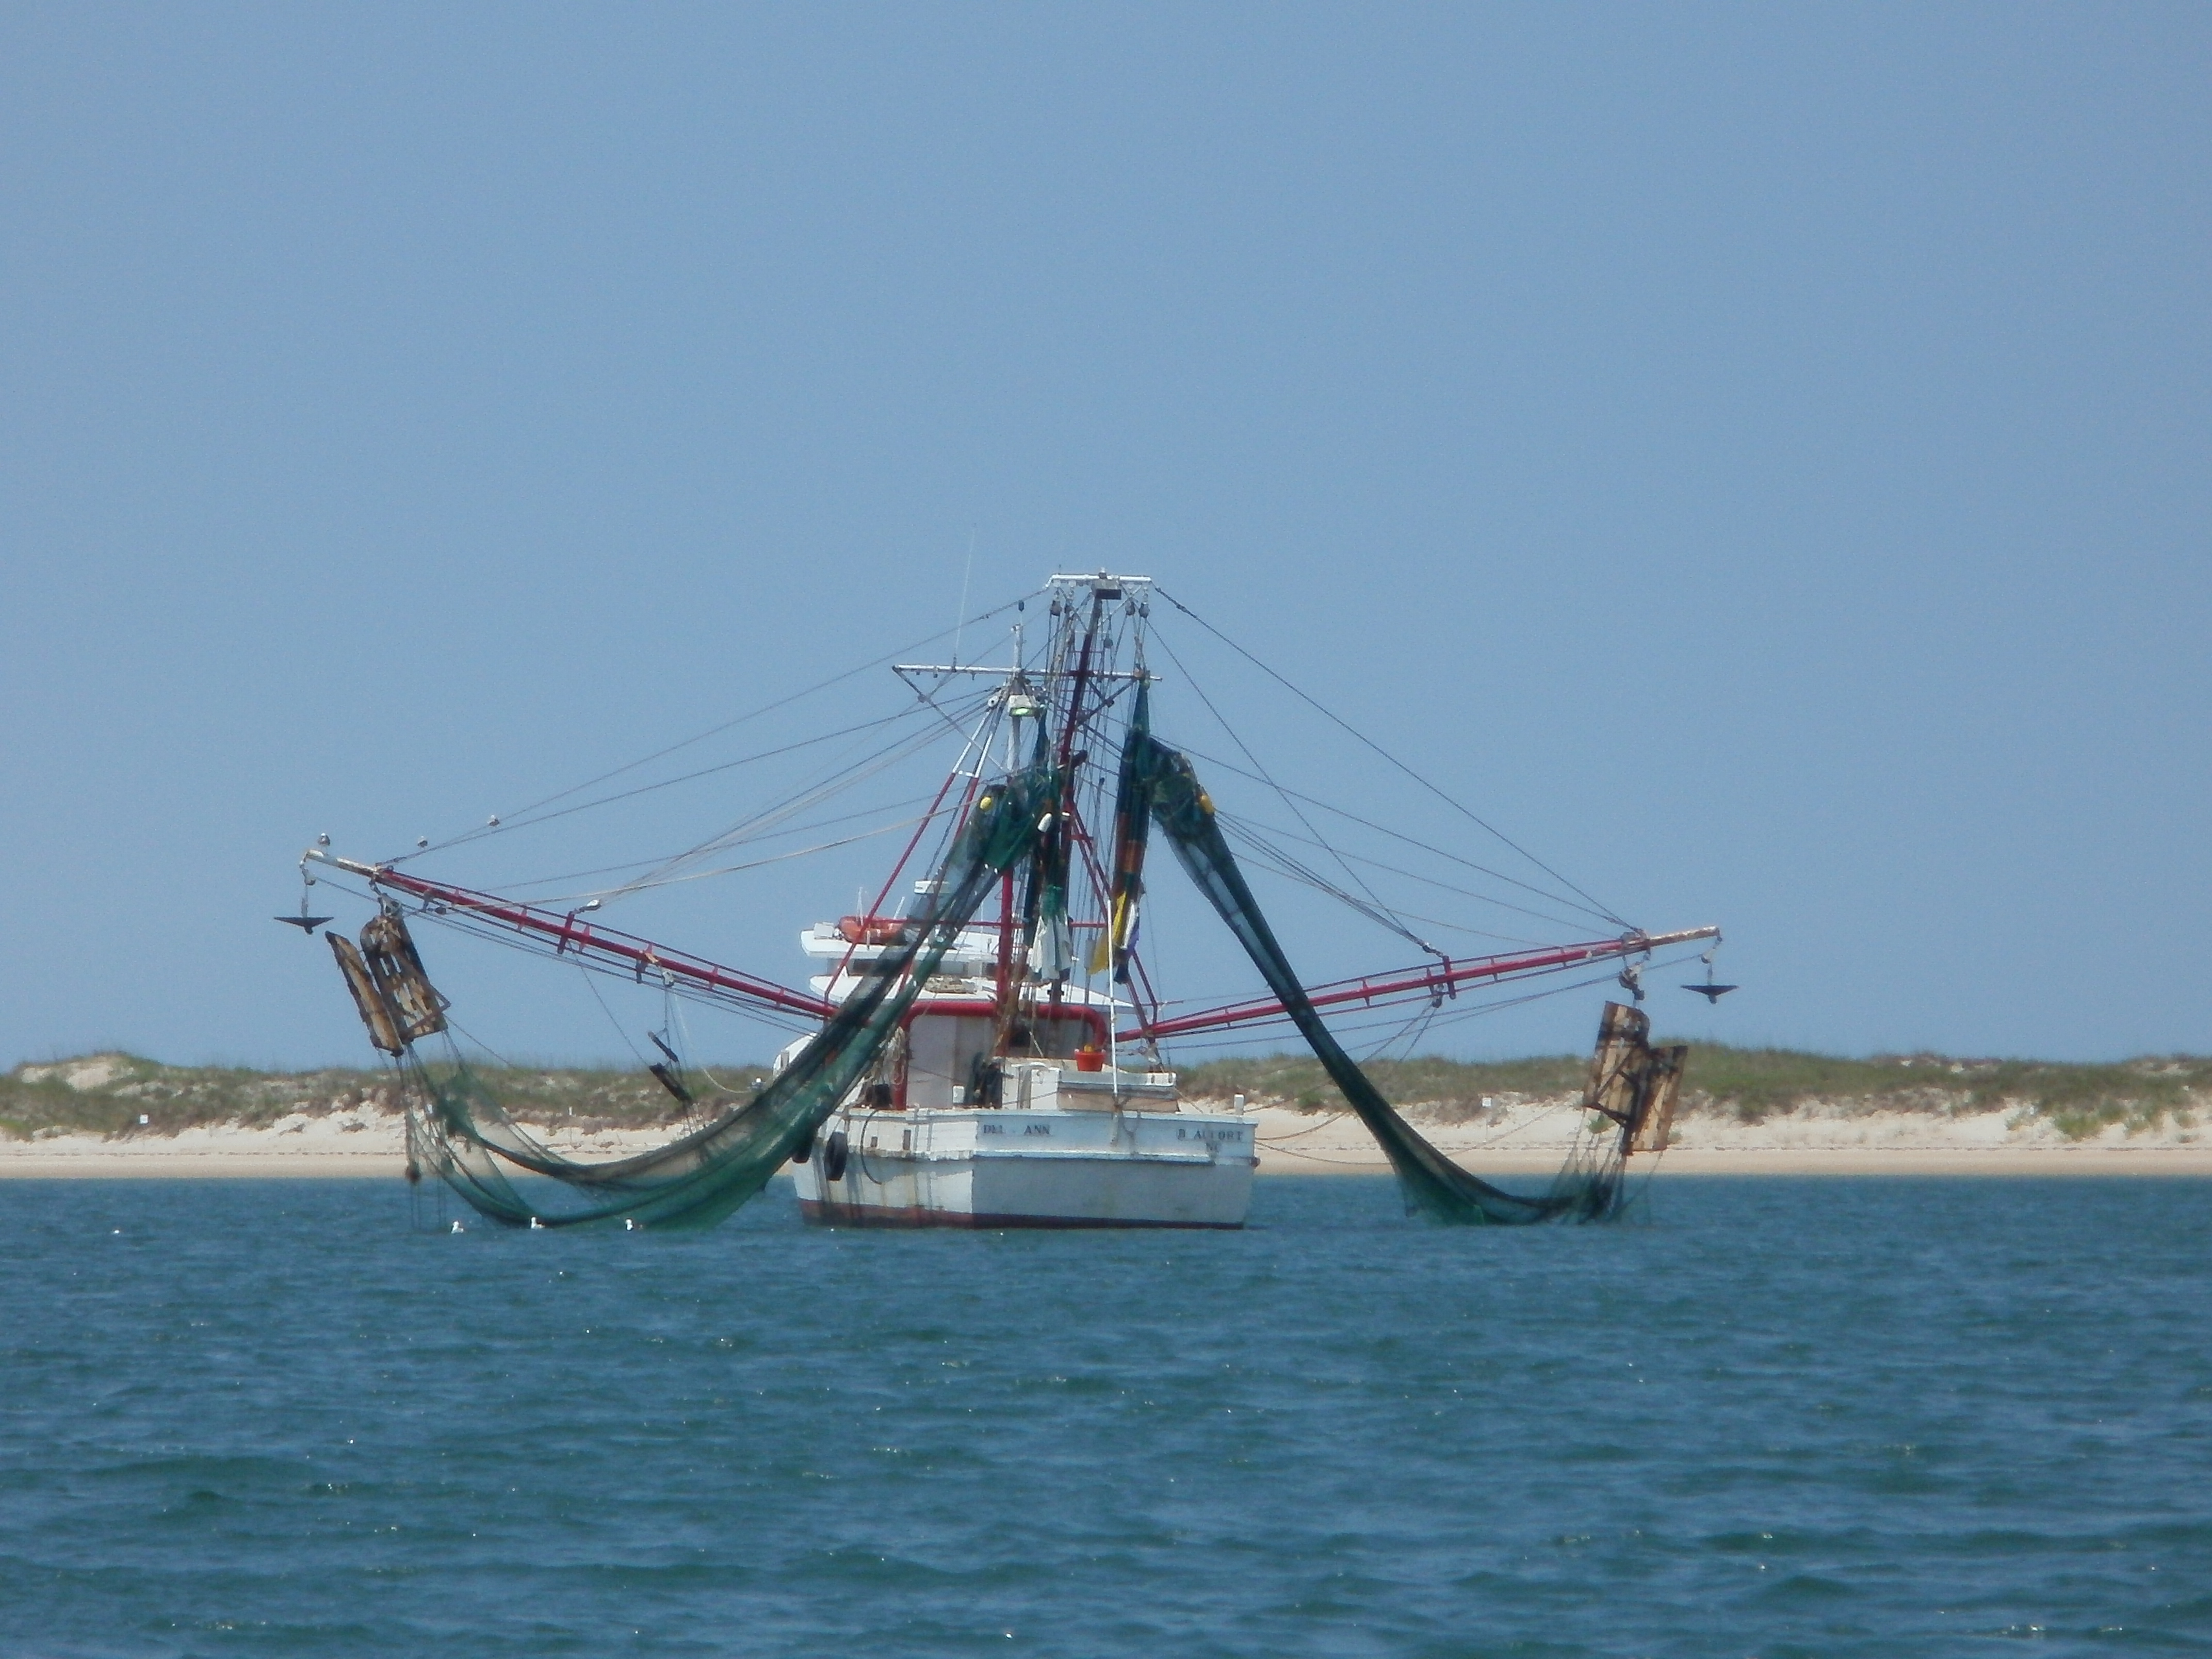 A shrimper at anchor